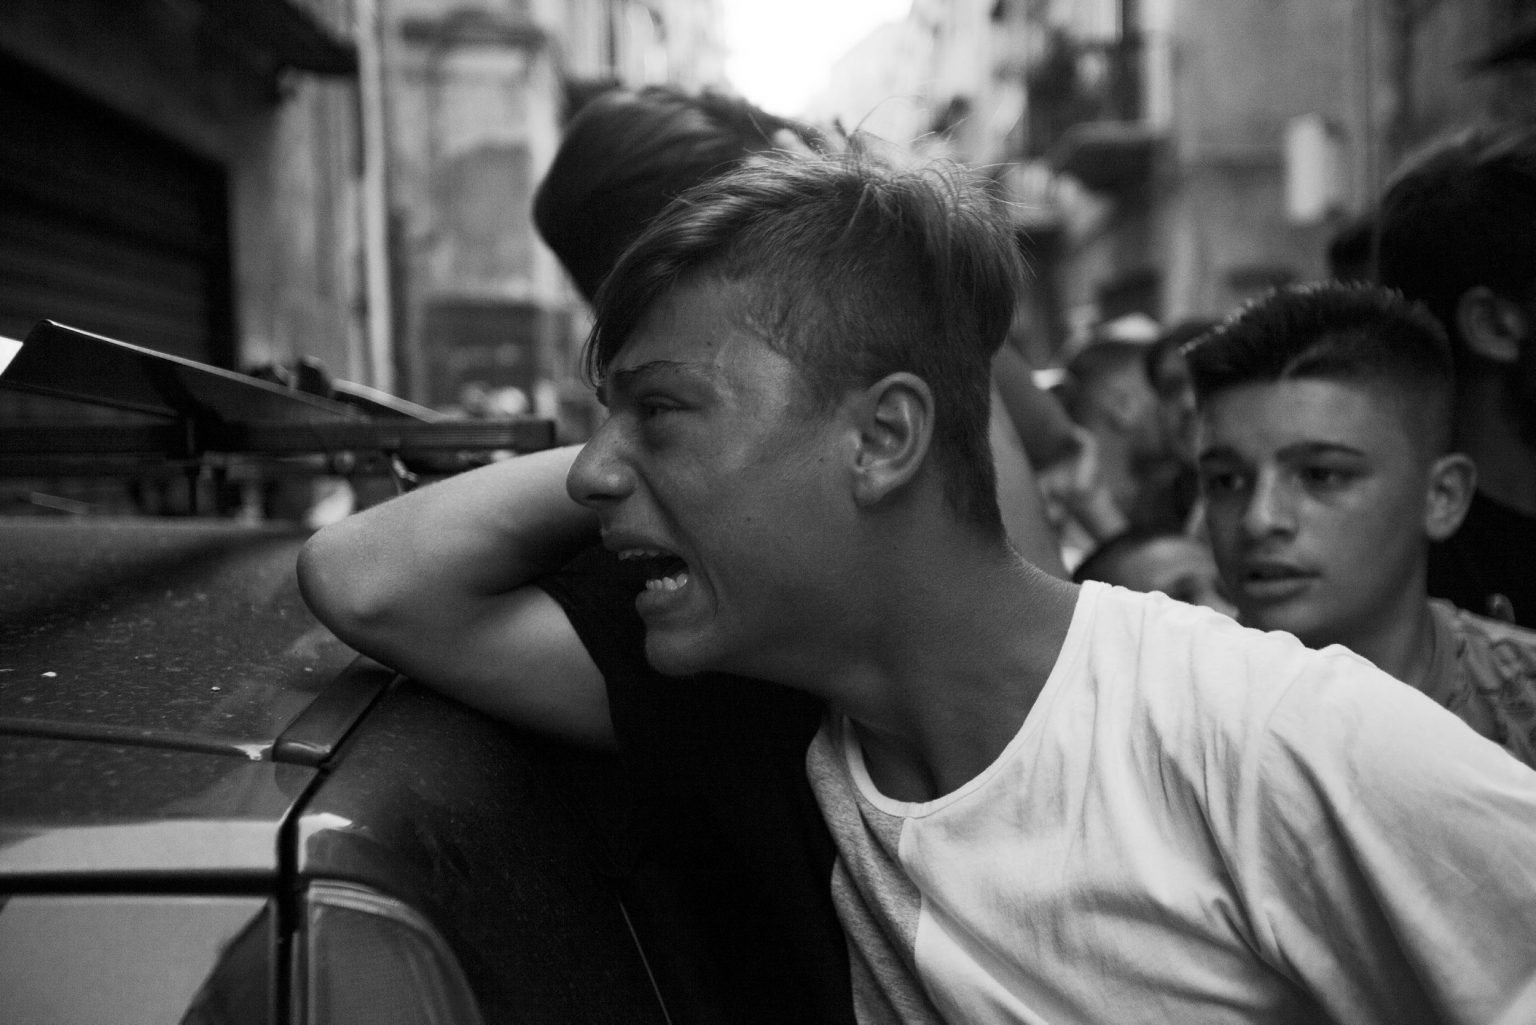 Genny Cesarano a 17 years old guy with previous convictions for robbery and possession of gun, was killed by a Camorra commando. The funeral of Genny, the friends bringing the coffin  in the streets of the quarter. Sanità neighborhood. Naples, Italy, 2015